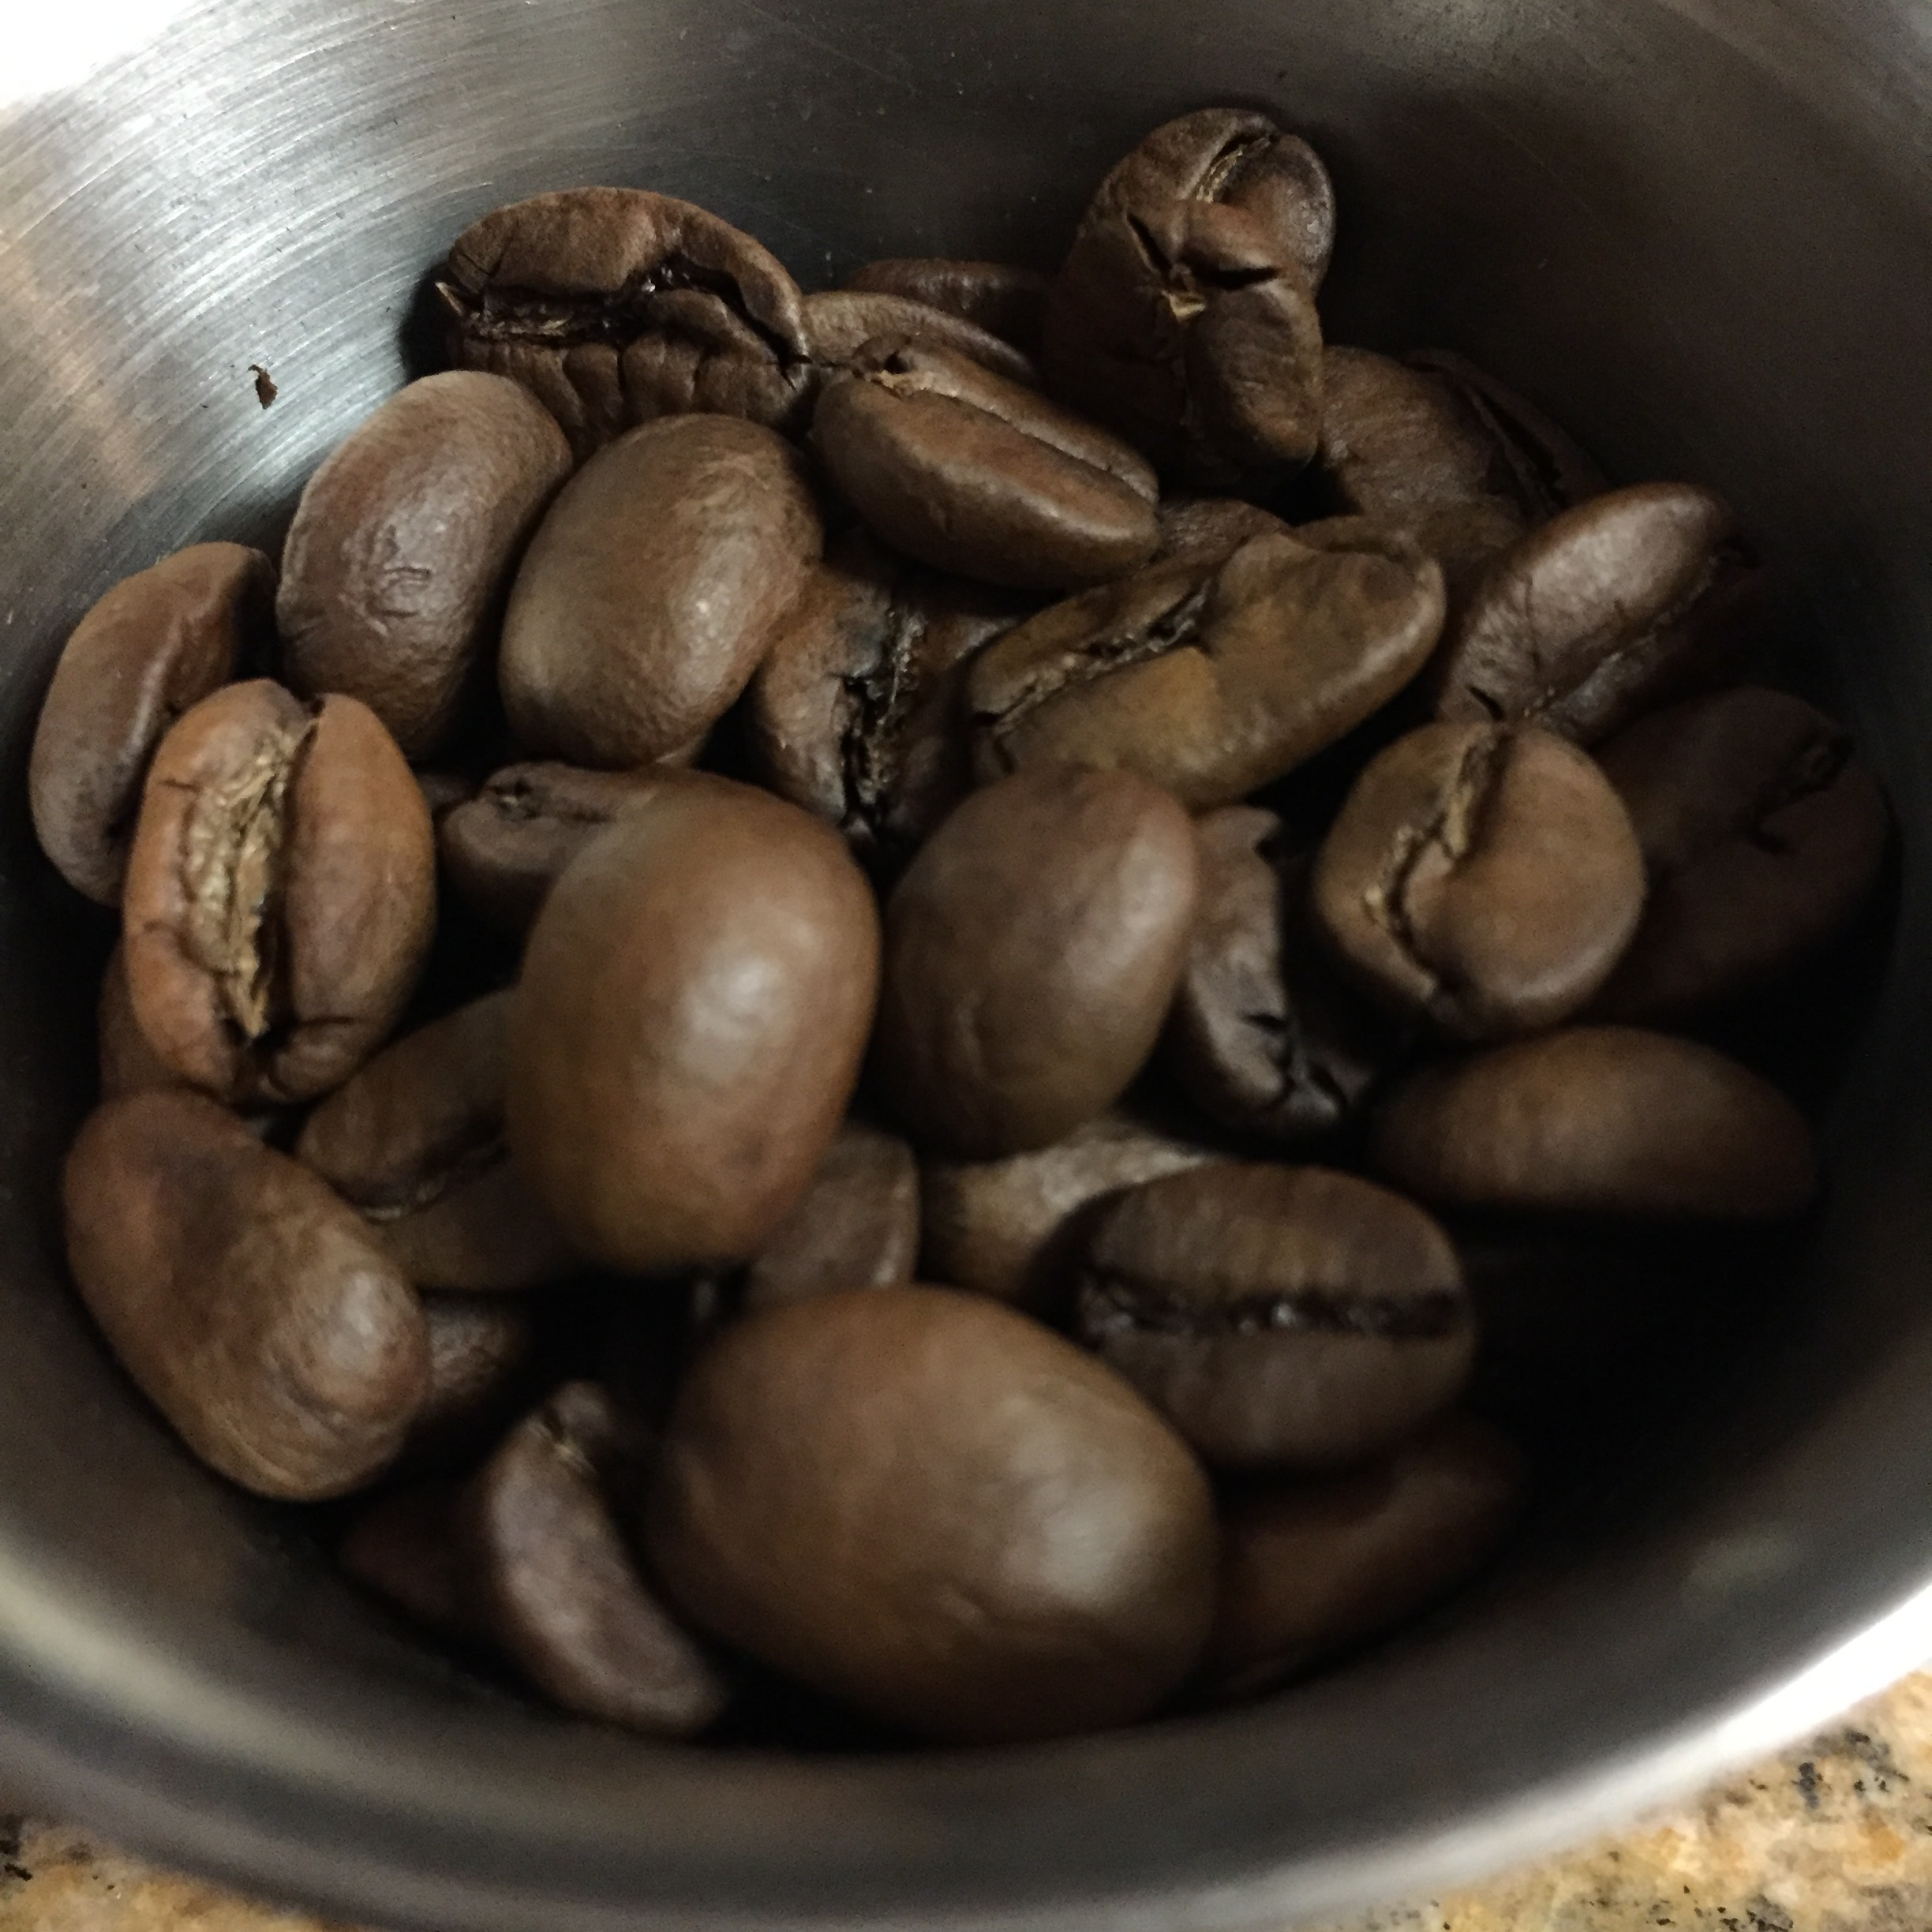 Really large, and evenly roasted beans.